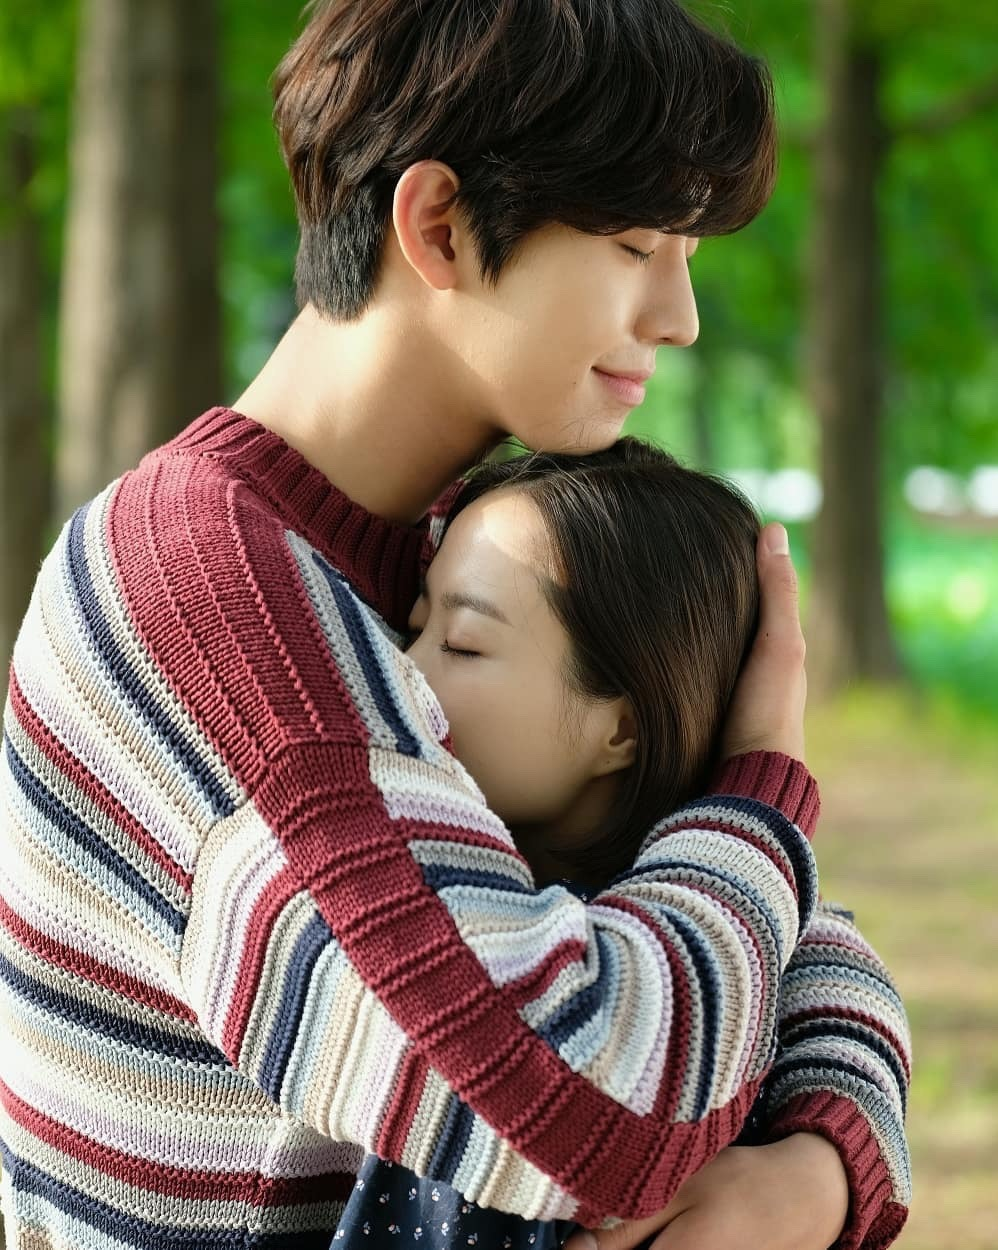 Image About Couple In Actors Dramas Live Actions By 쥬